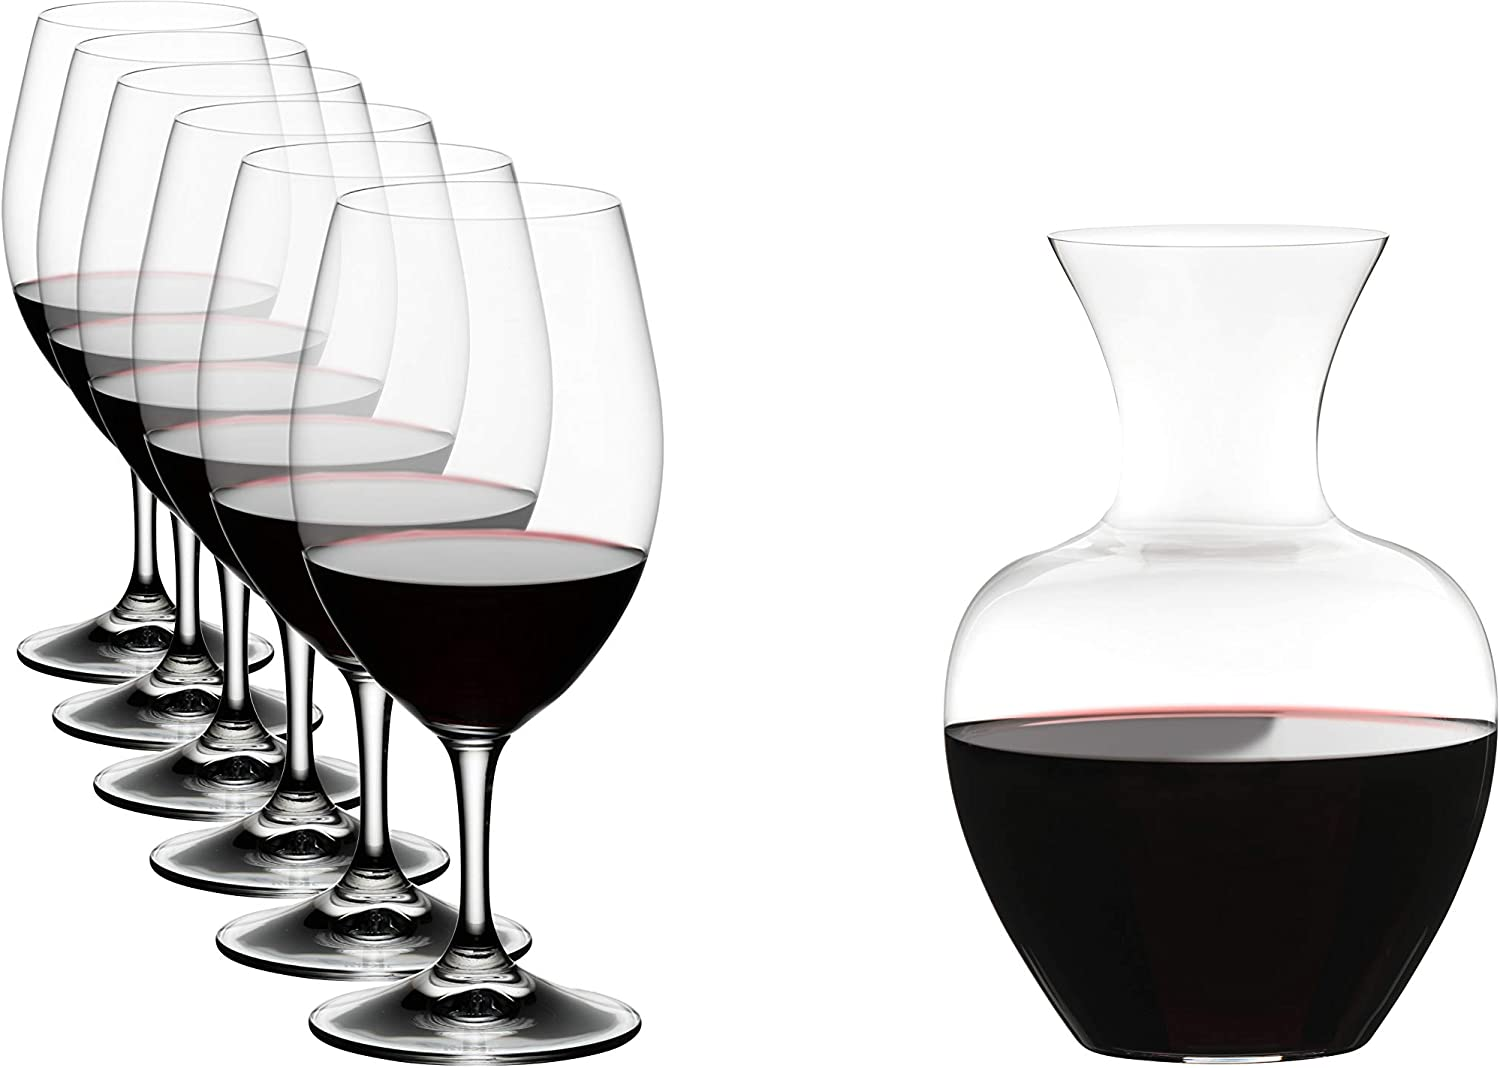 Riedel Ouverture Wine Glass and Decanter Set, 7 Piece, Decanter & Glasses